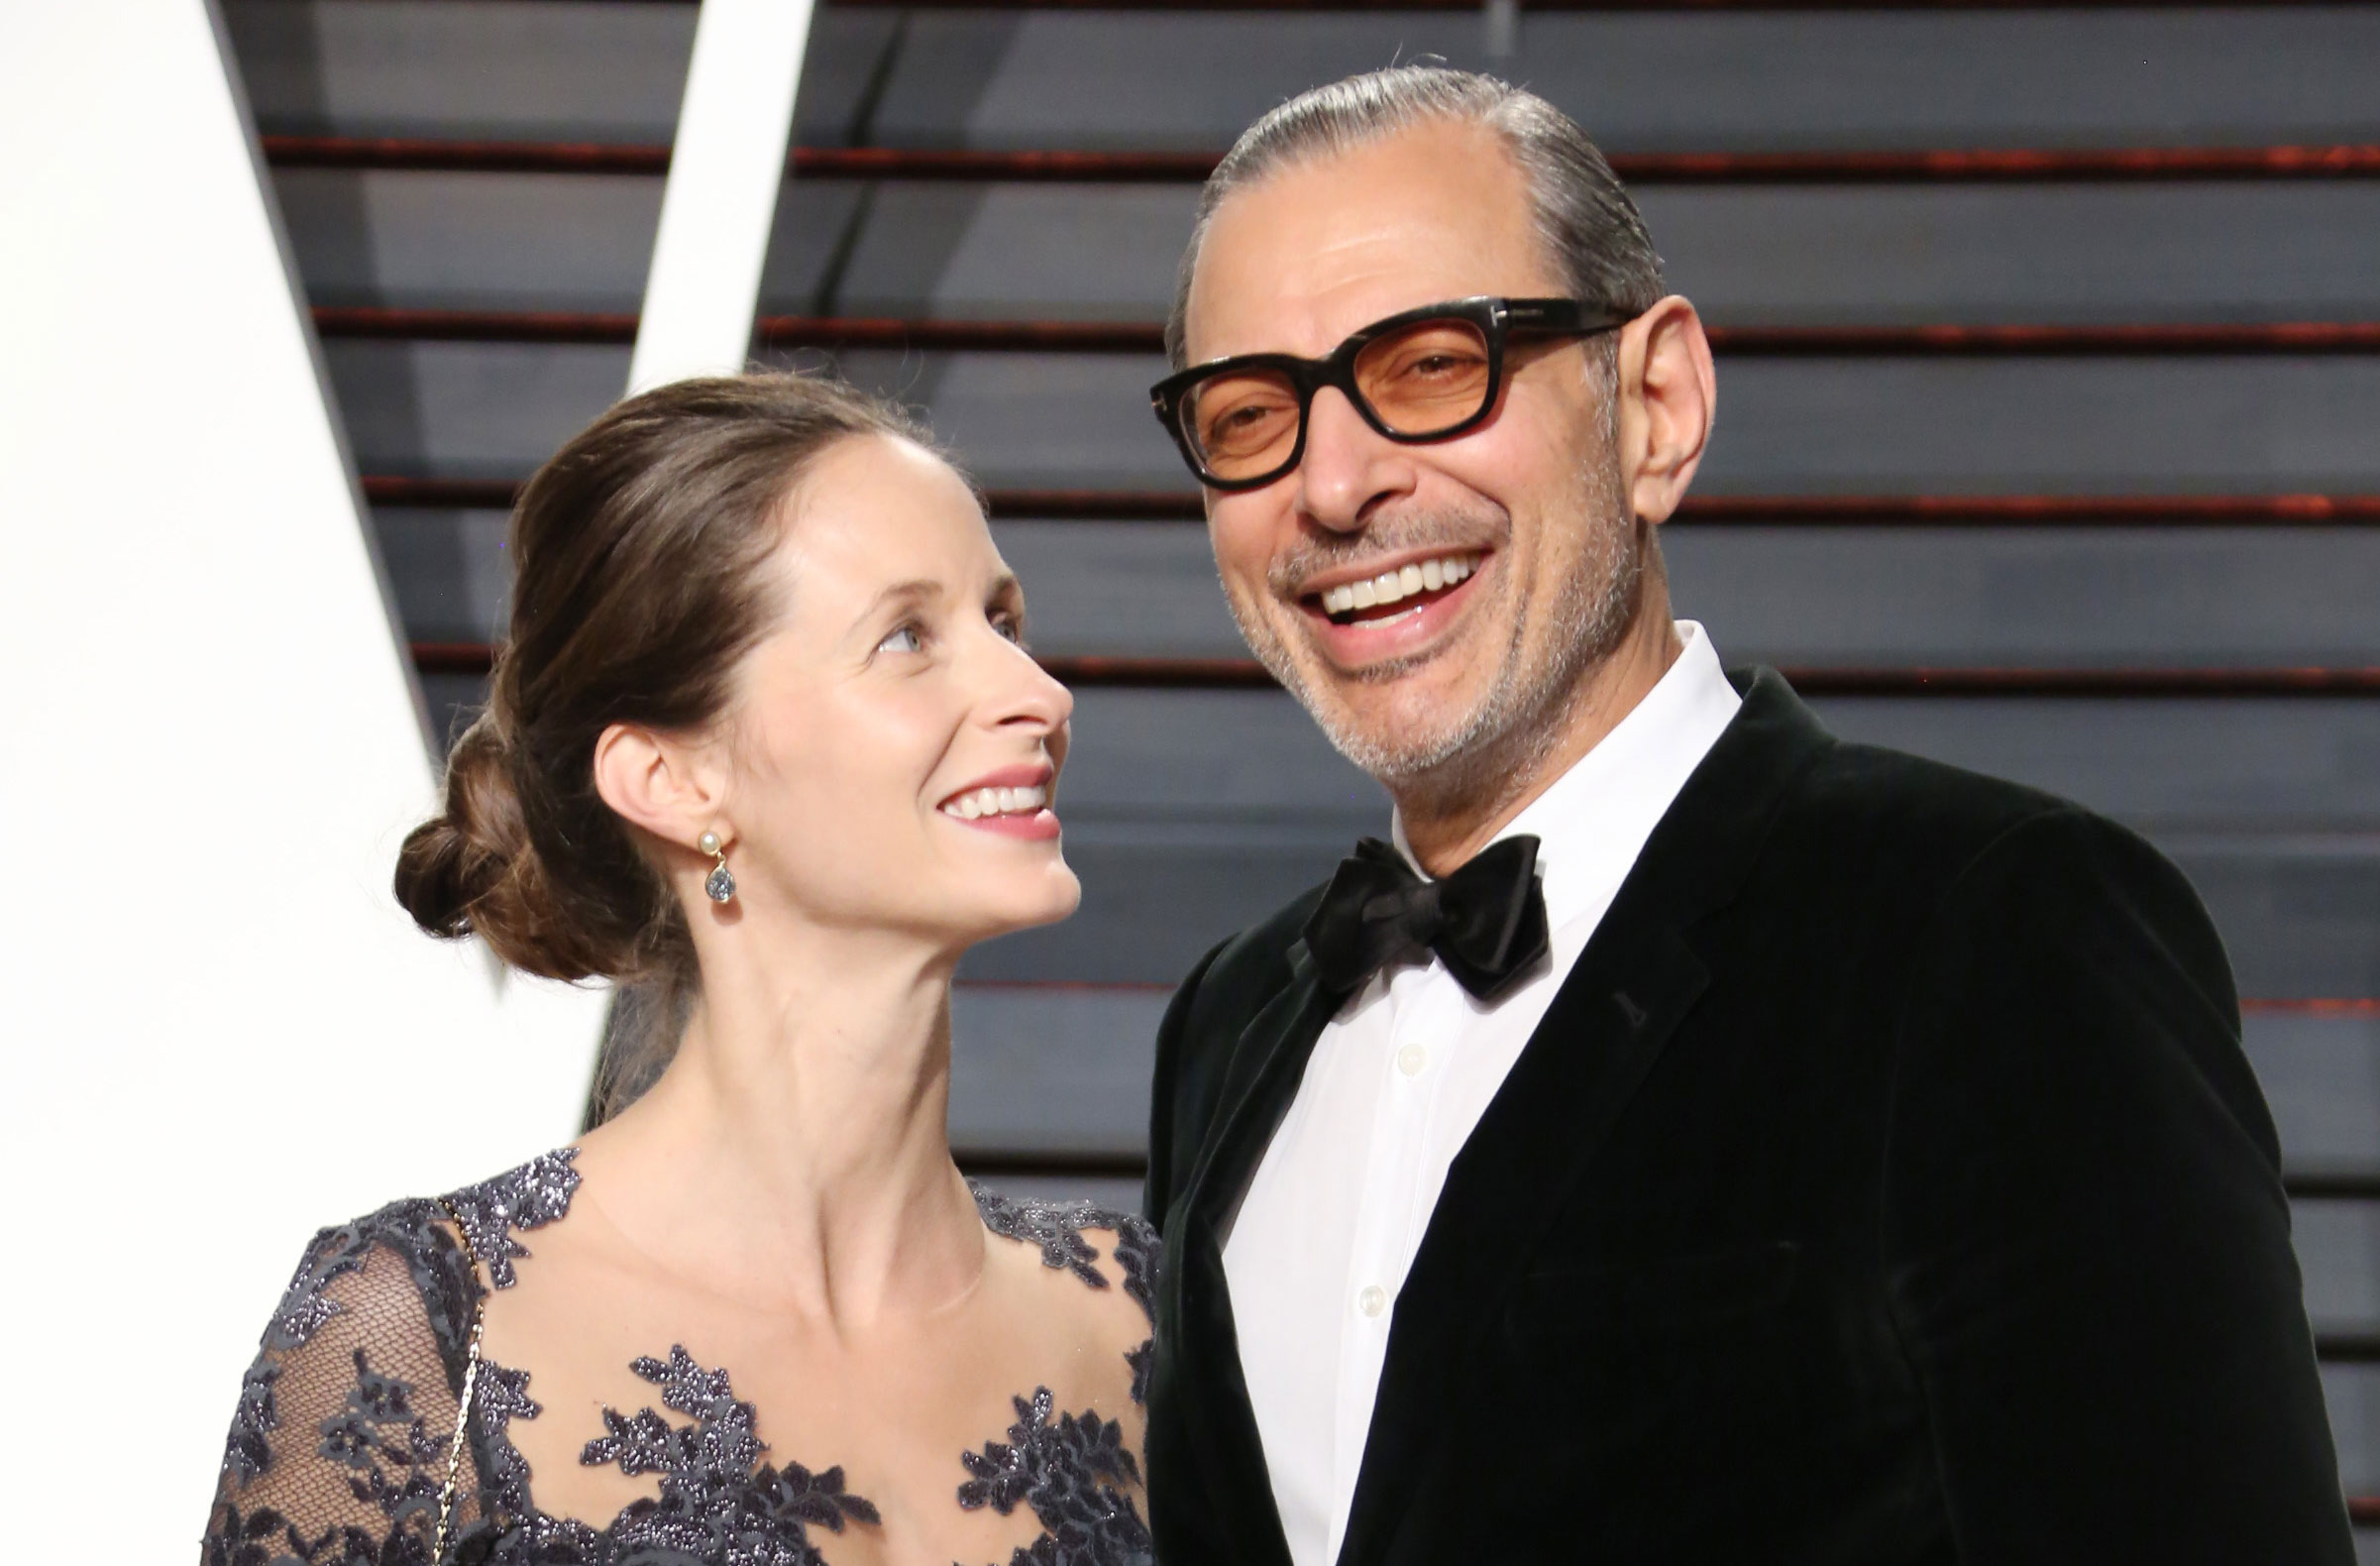 Actor Jeff Goldblum S Wife Emilie Livingston Reveals They Went To A Therapist Before Deciding To